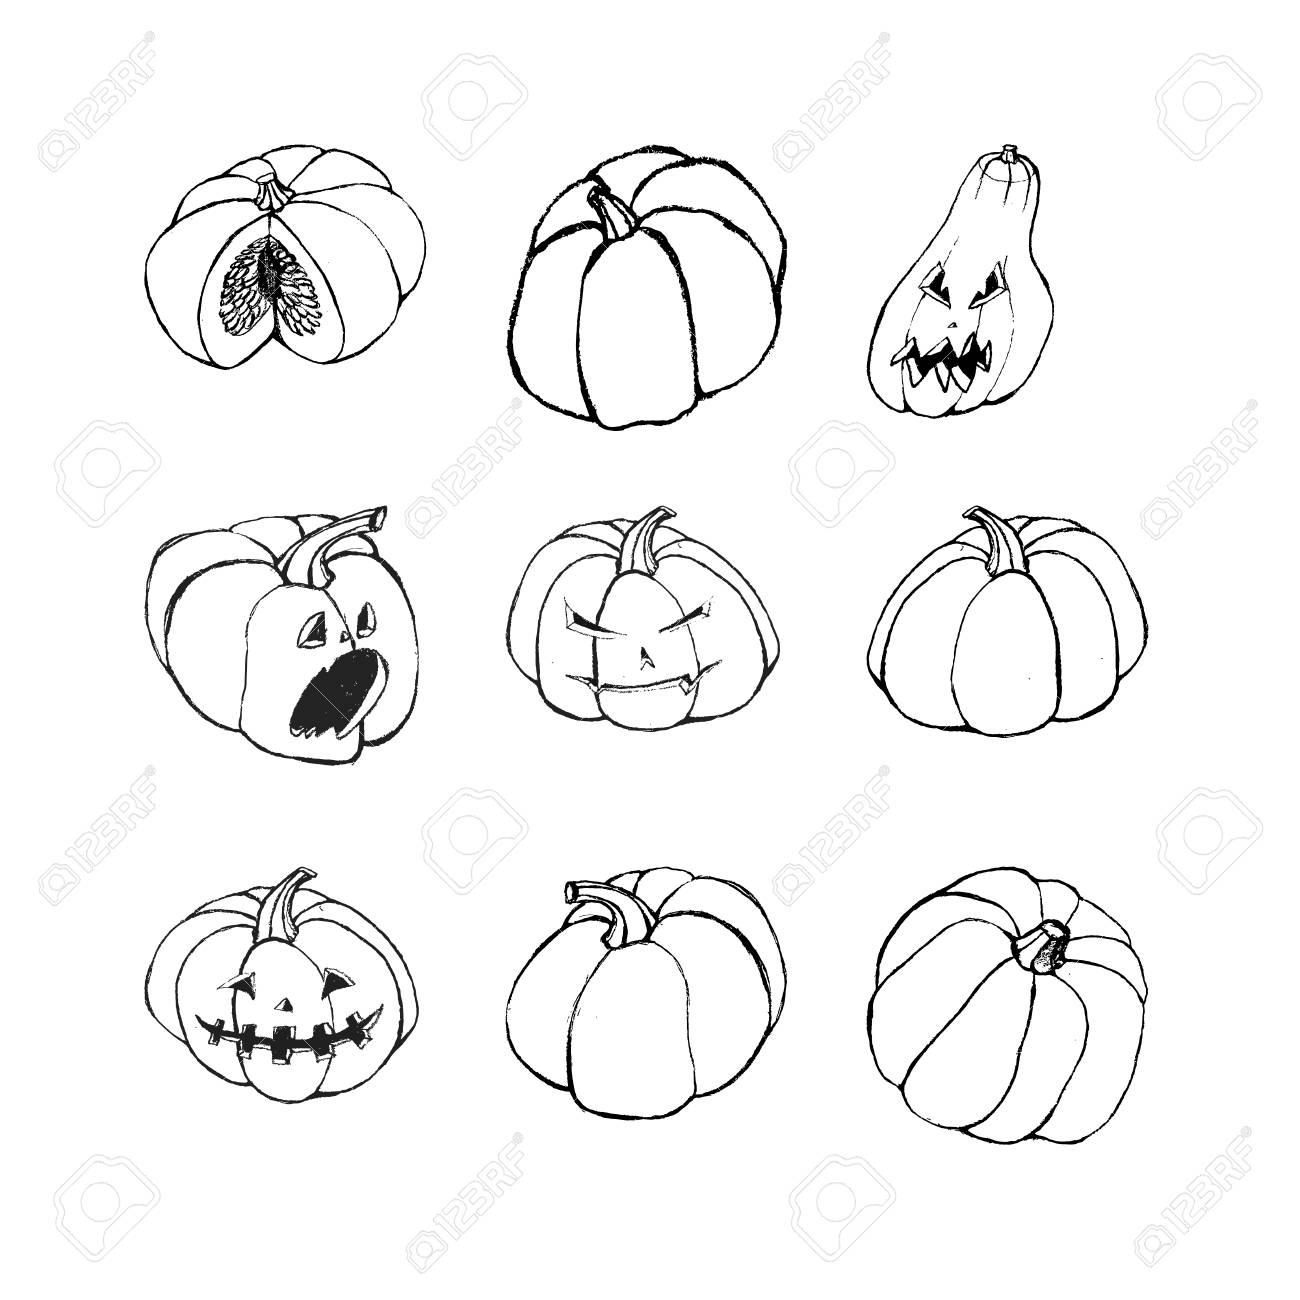 Halloween Set With Scary Jack O Lantern Pumpkins Black And White